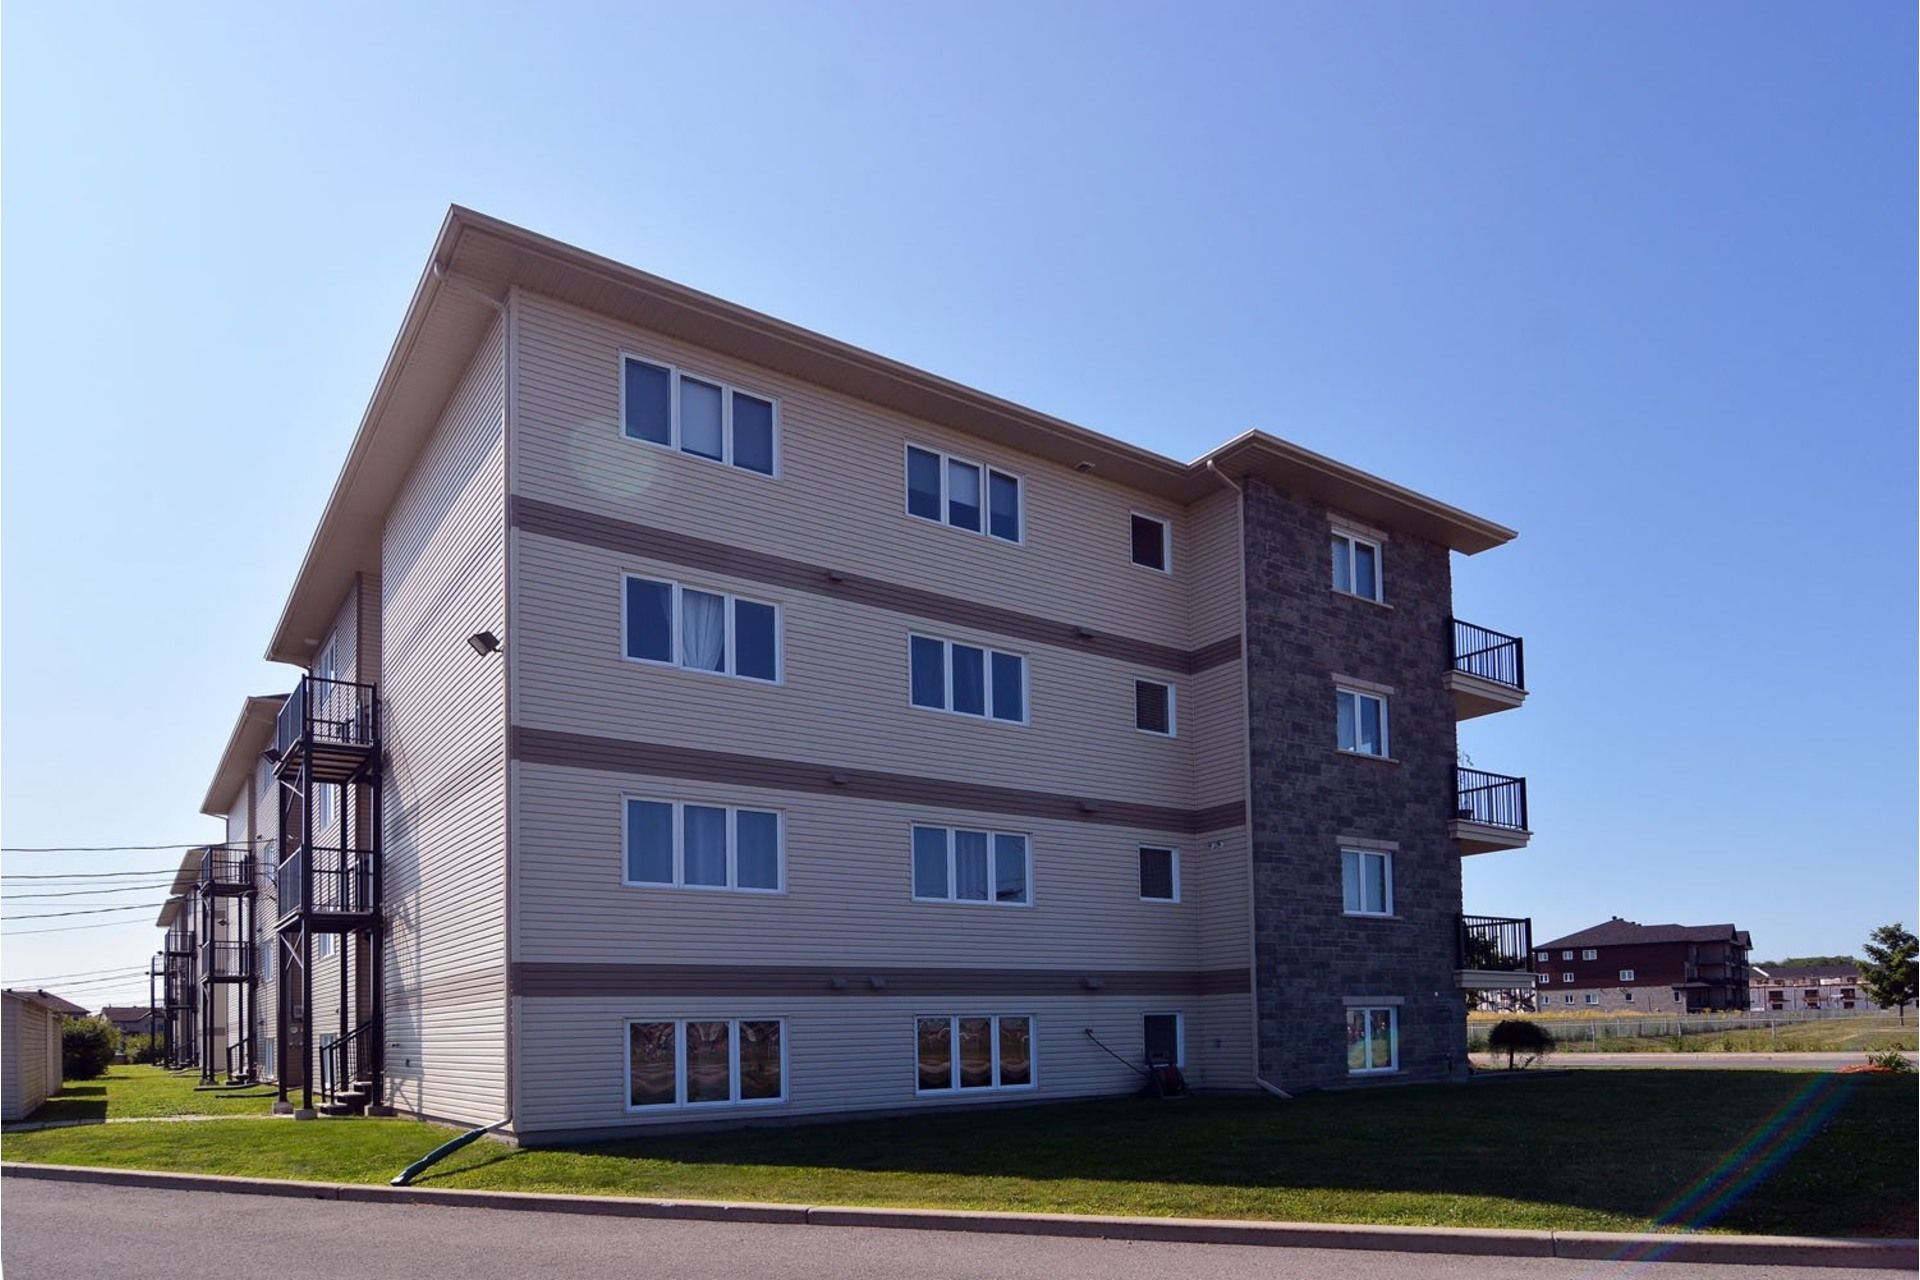 image 22 - Apartment For sale Vaudreuil-Dorion - 7 rooms